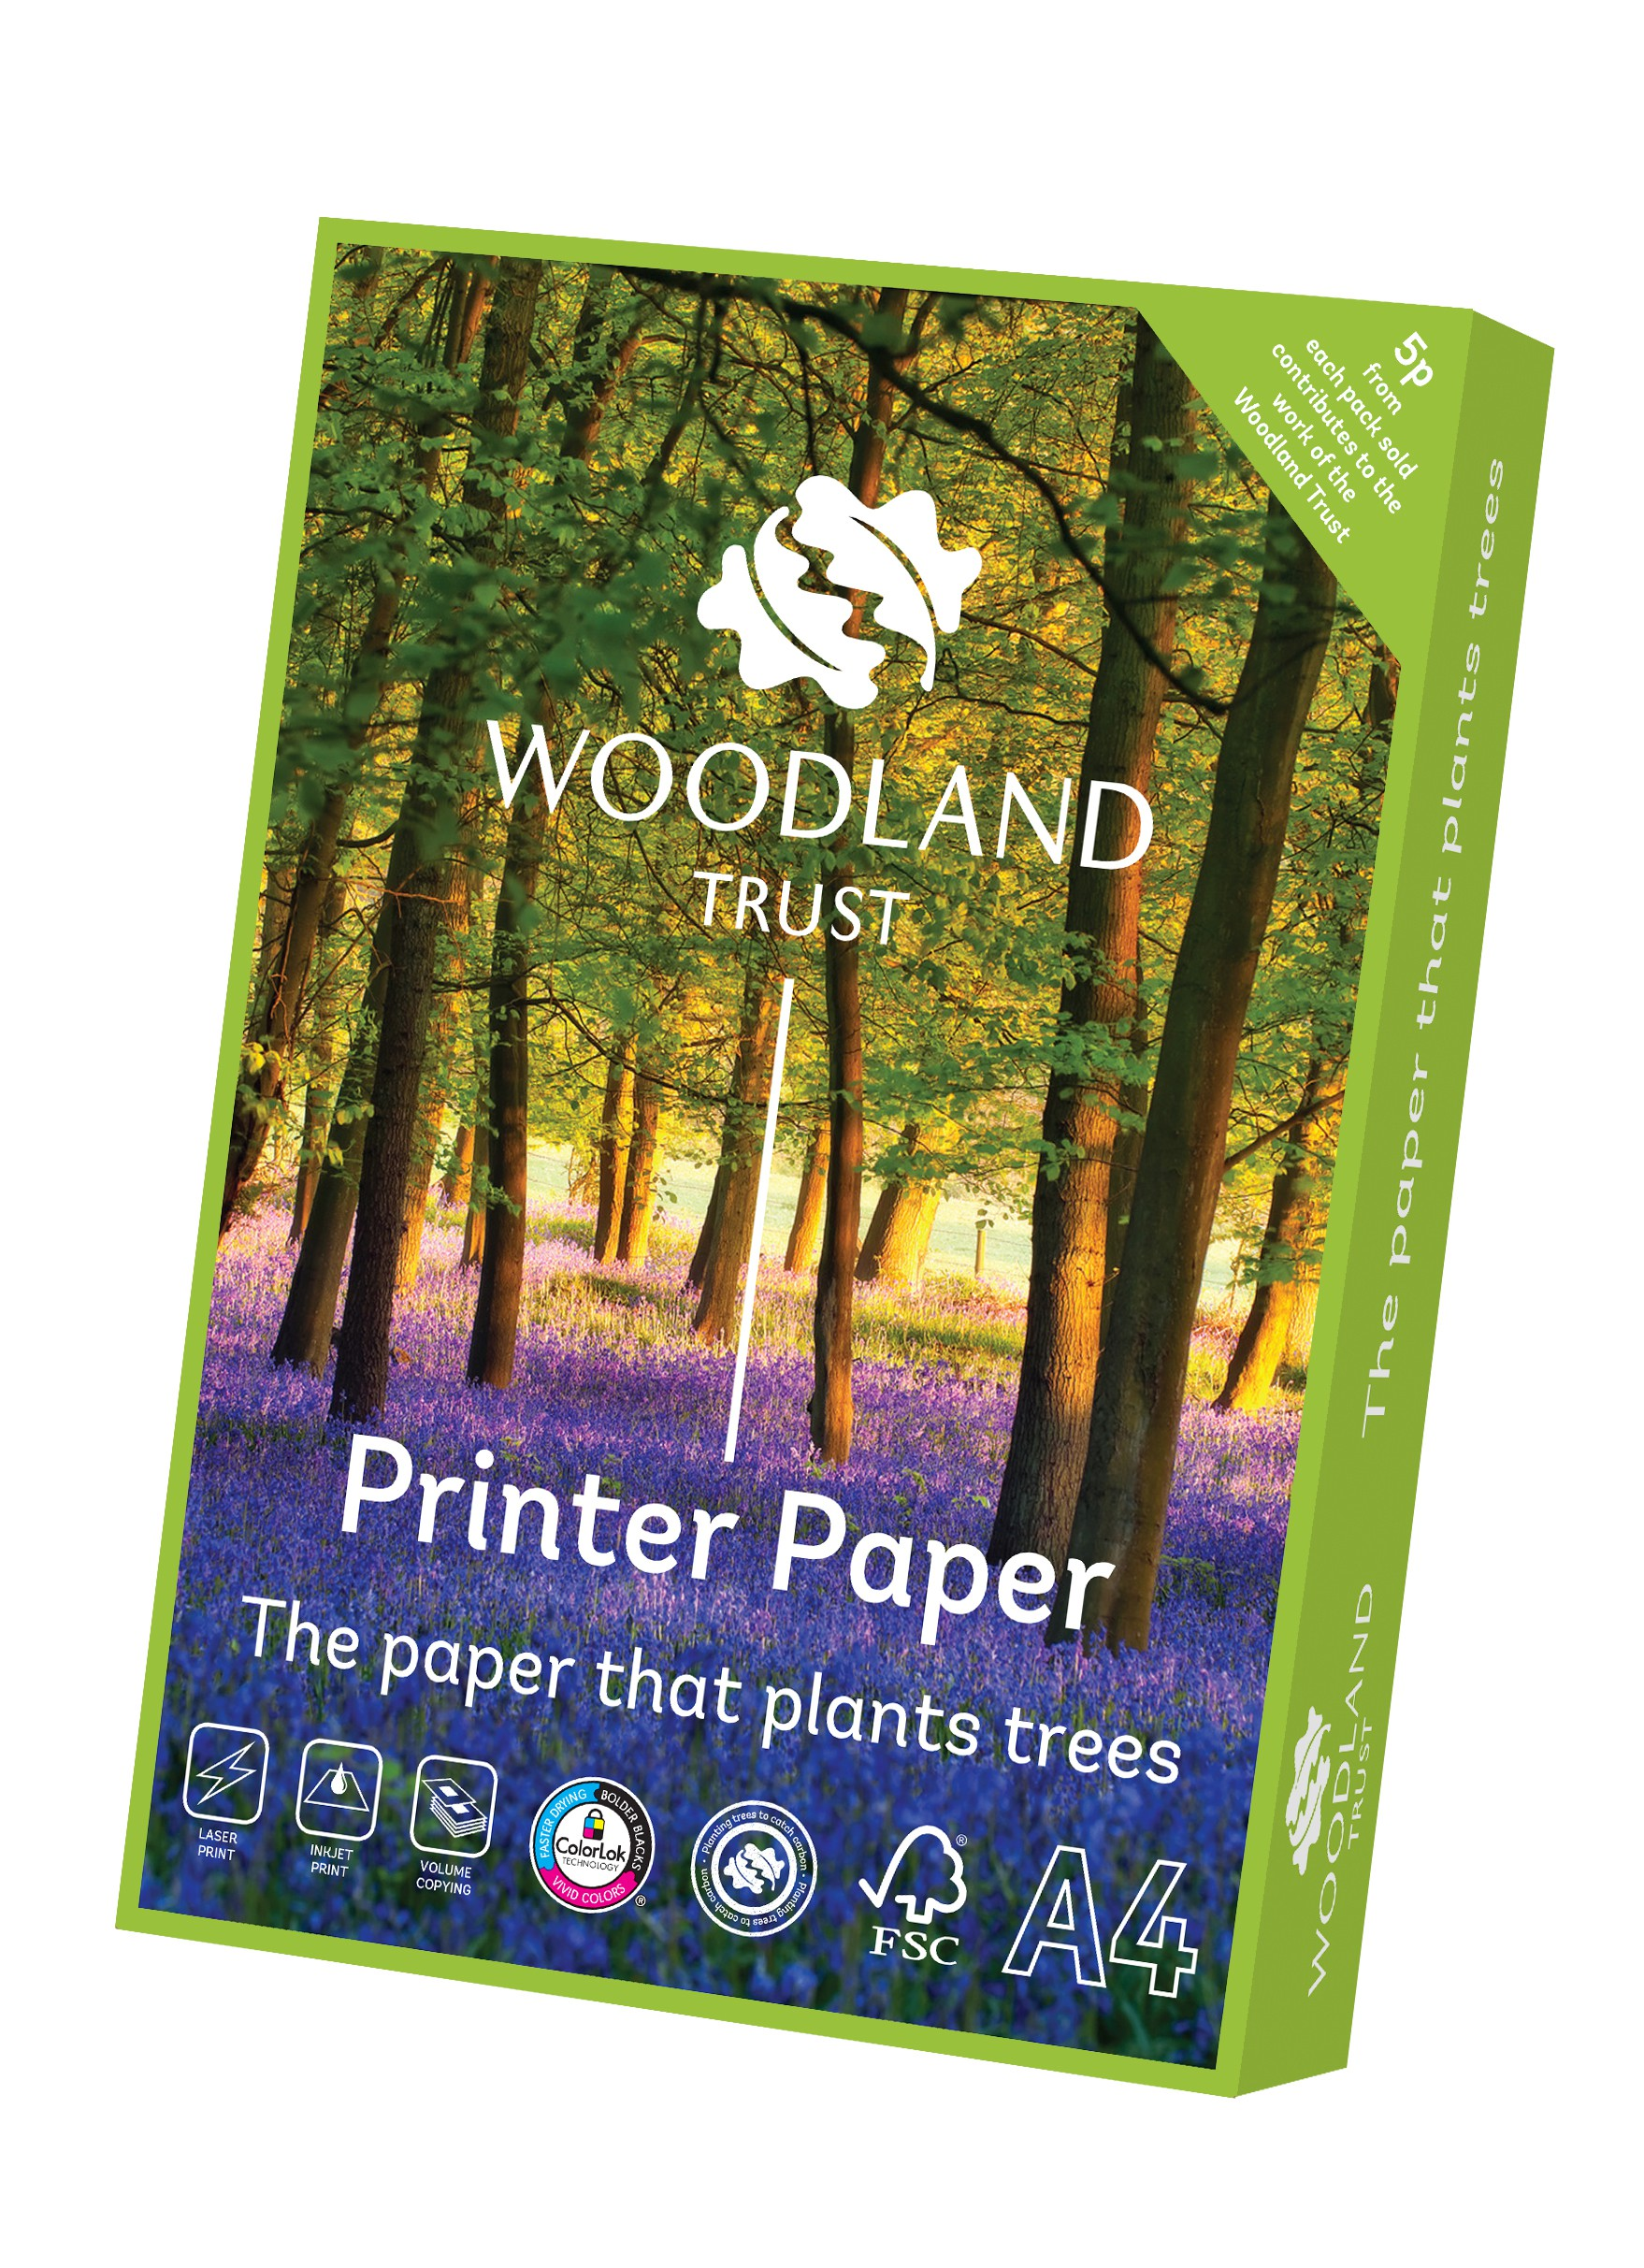 Woodland Trust A4 Office Paper (Box of 2,500 sheets)